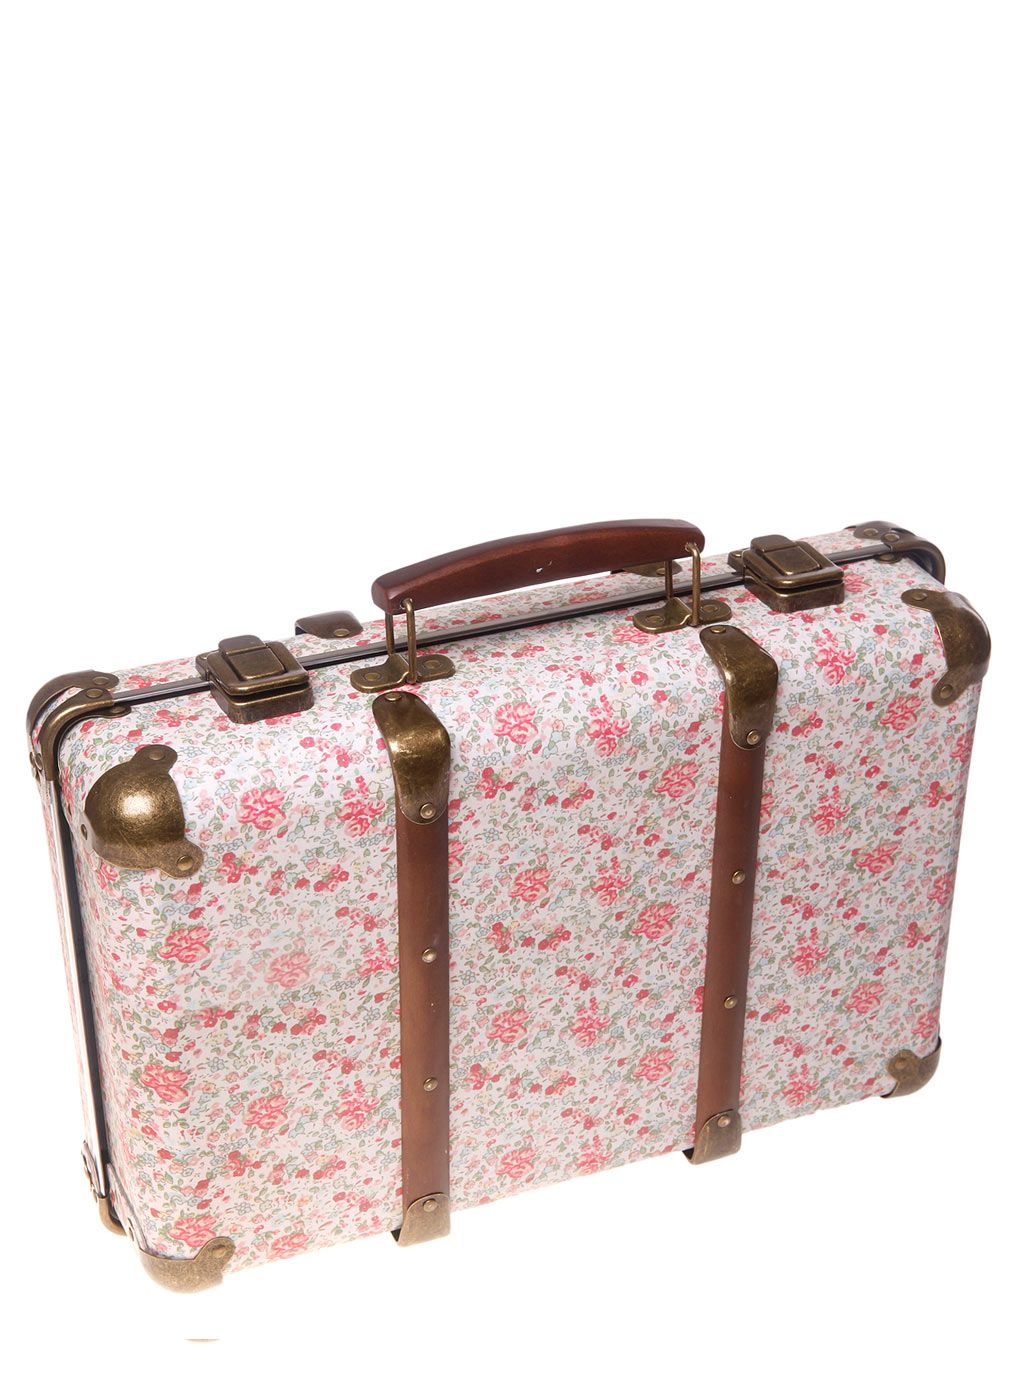 Sass Belle Vintage Rose Floral Suitcase- BHS | Randoms | Pinterest ...